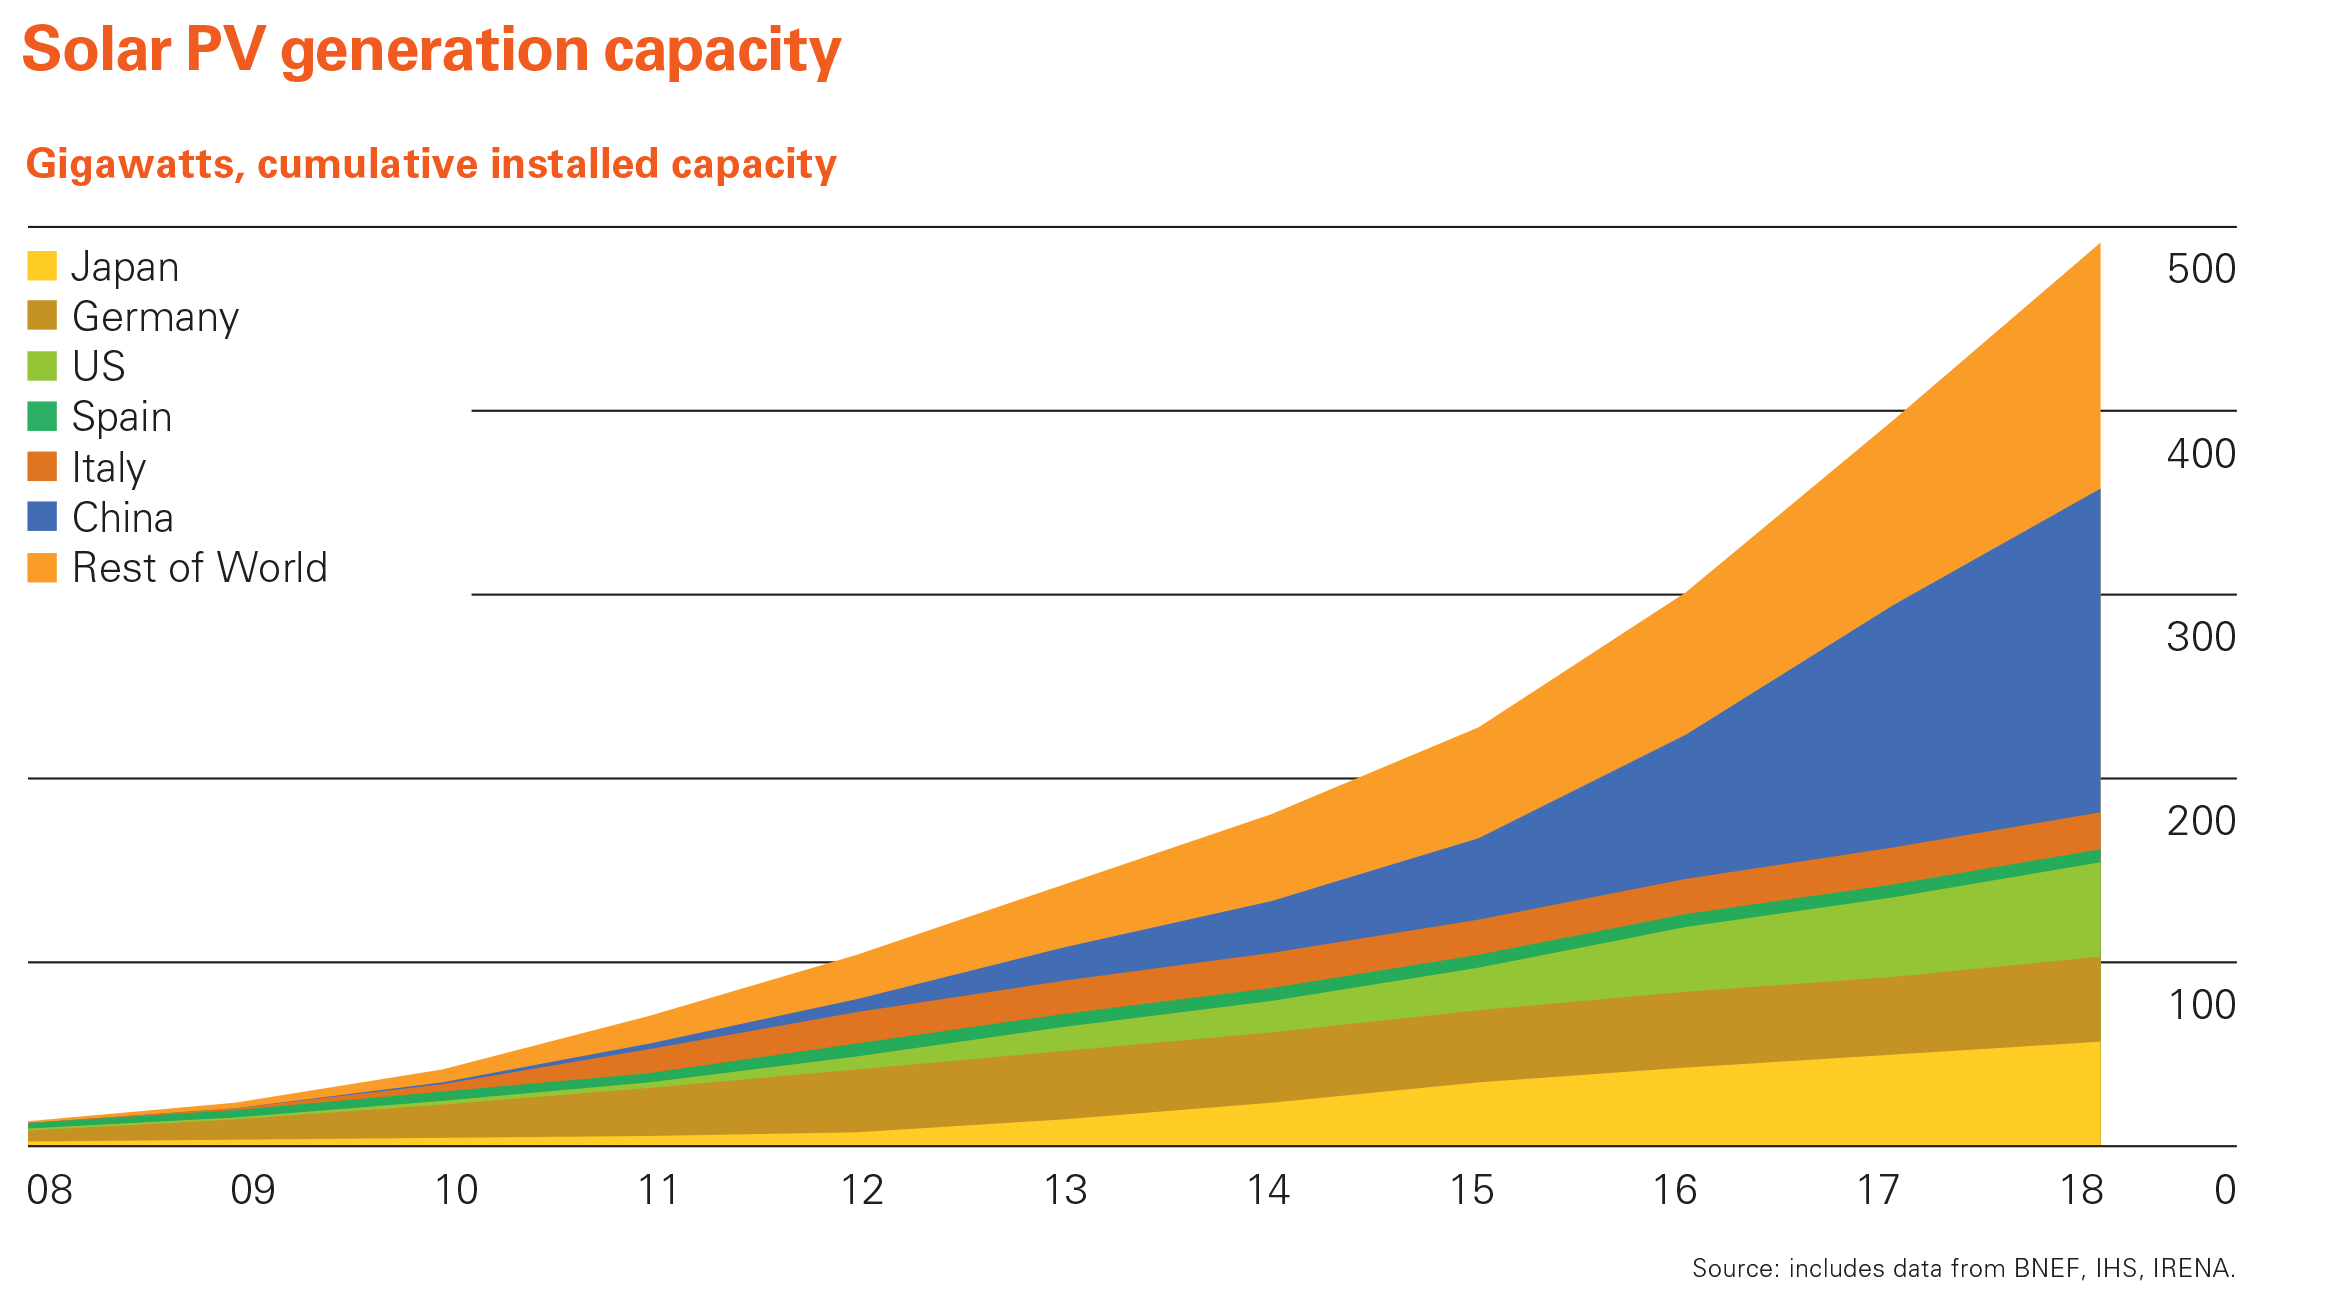 Graph of Solar PV Generation Capacity